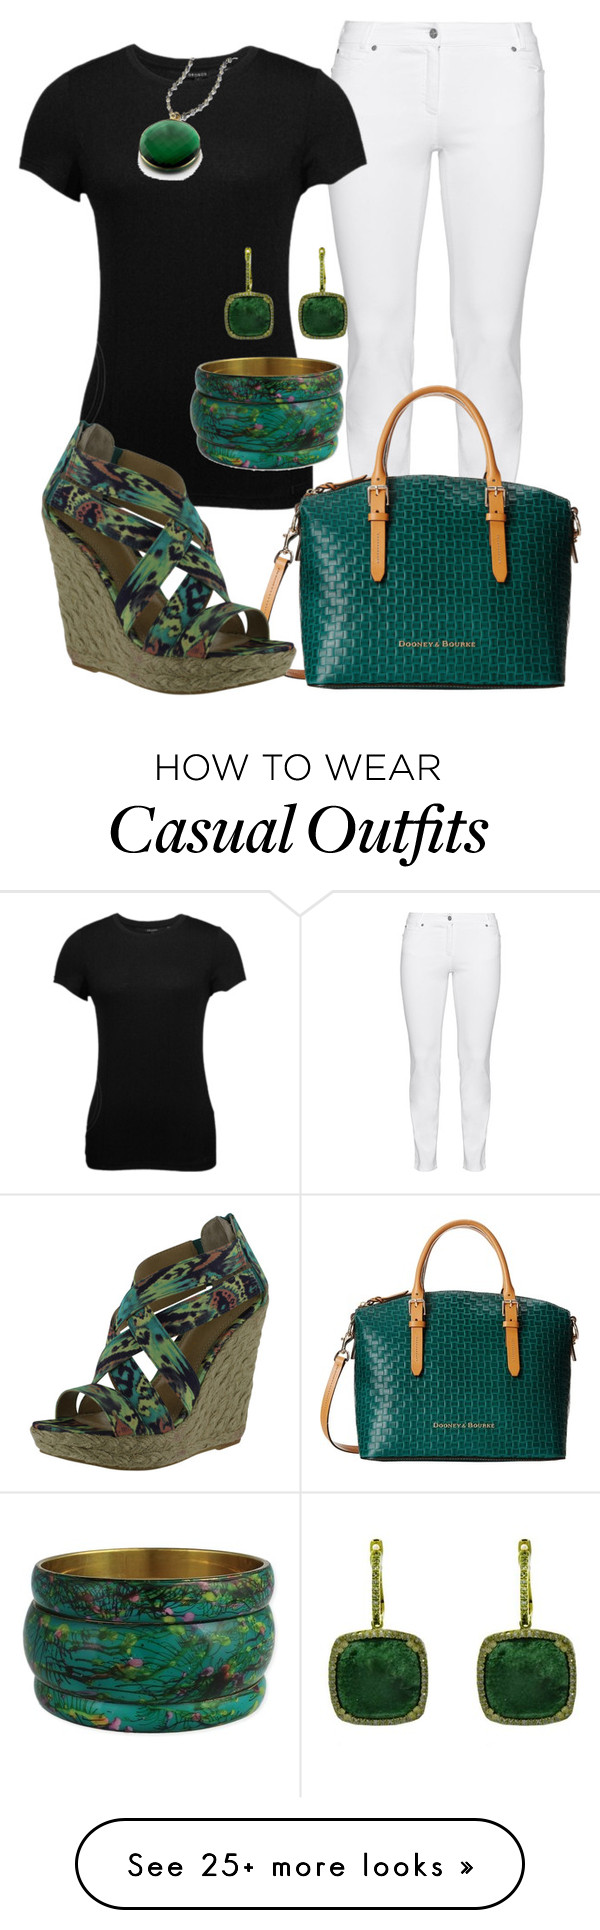 """""""Casual"""" by alice-fortuna on Polyvore featuring Steilmann, Orobos, Dooney & Bourke, Chinese Laundry, Dabakarov and ela rae"""